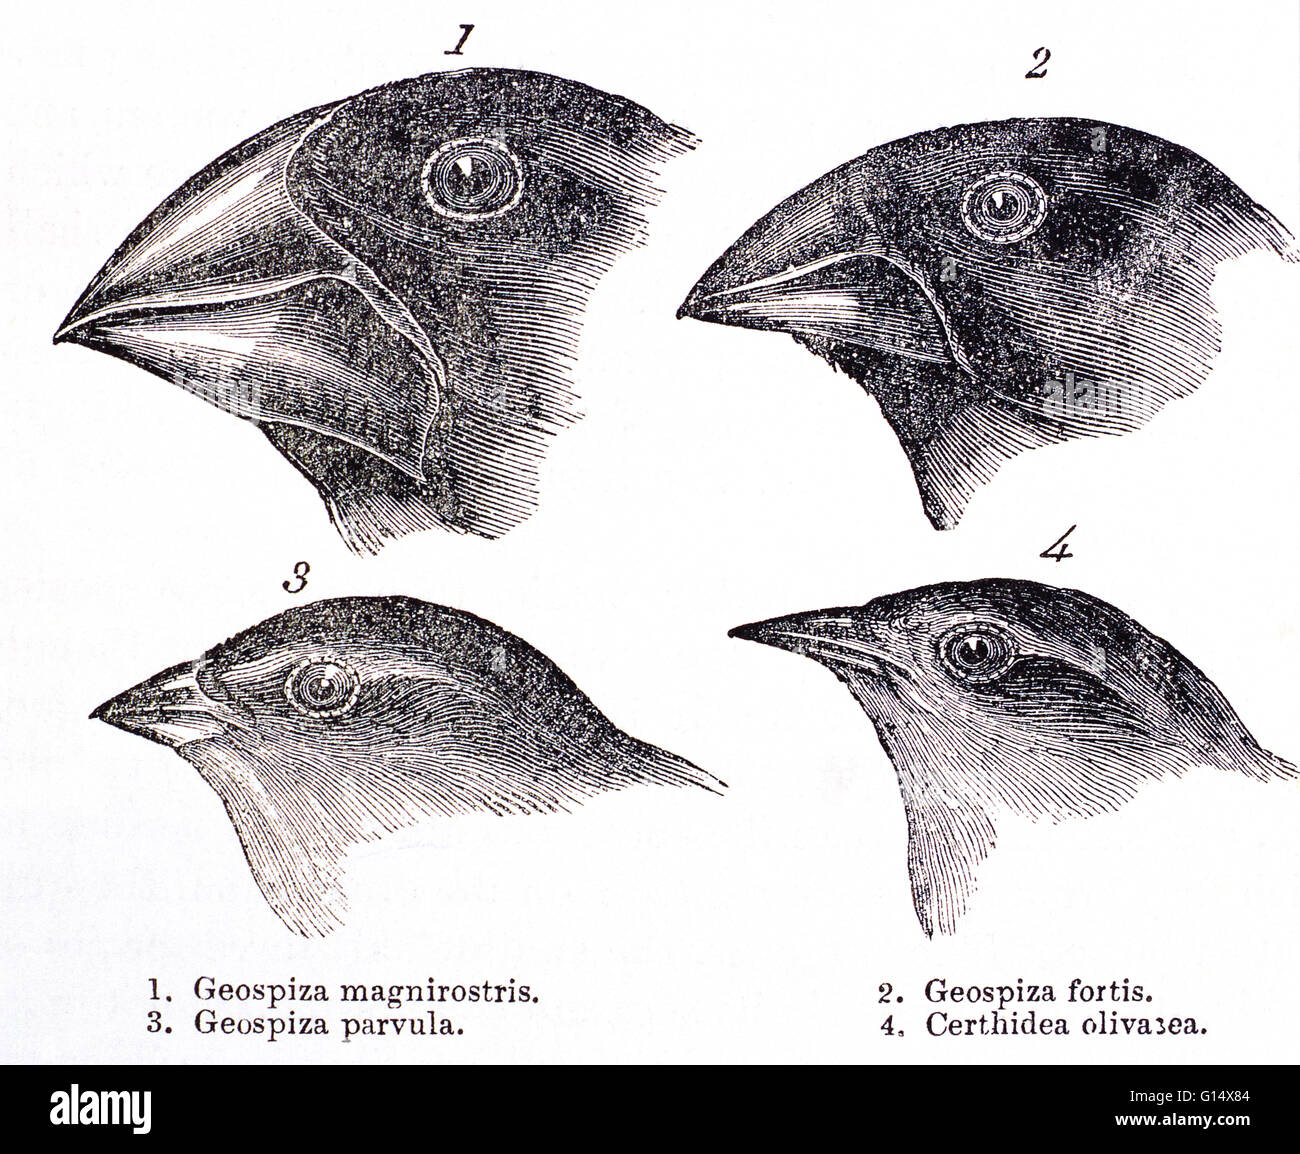 Galapagos finches. Historical artwork of the heads of Galapagos finches, made by Charles Darwin in his book 'A - Stock Image